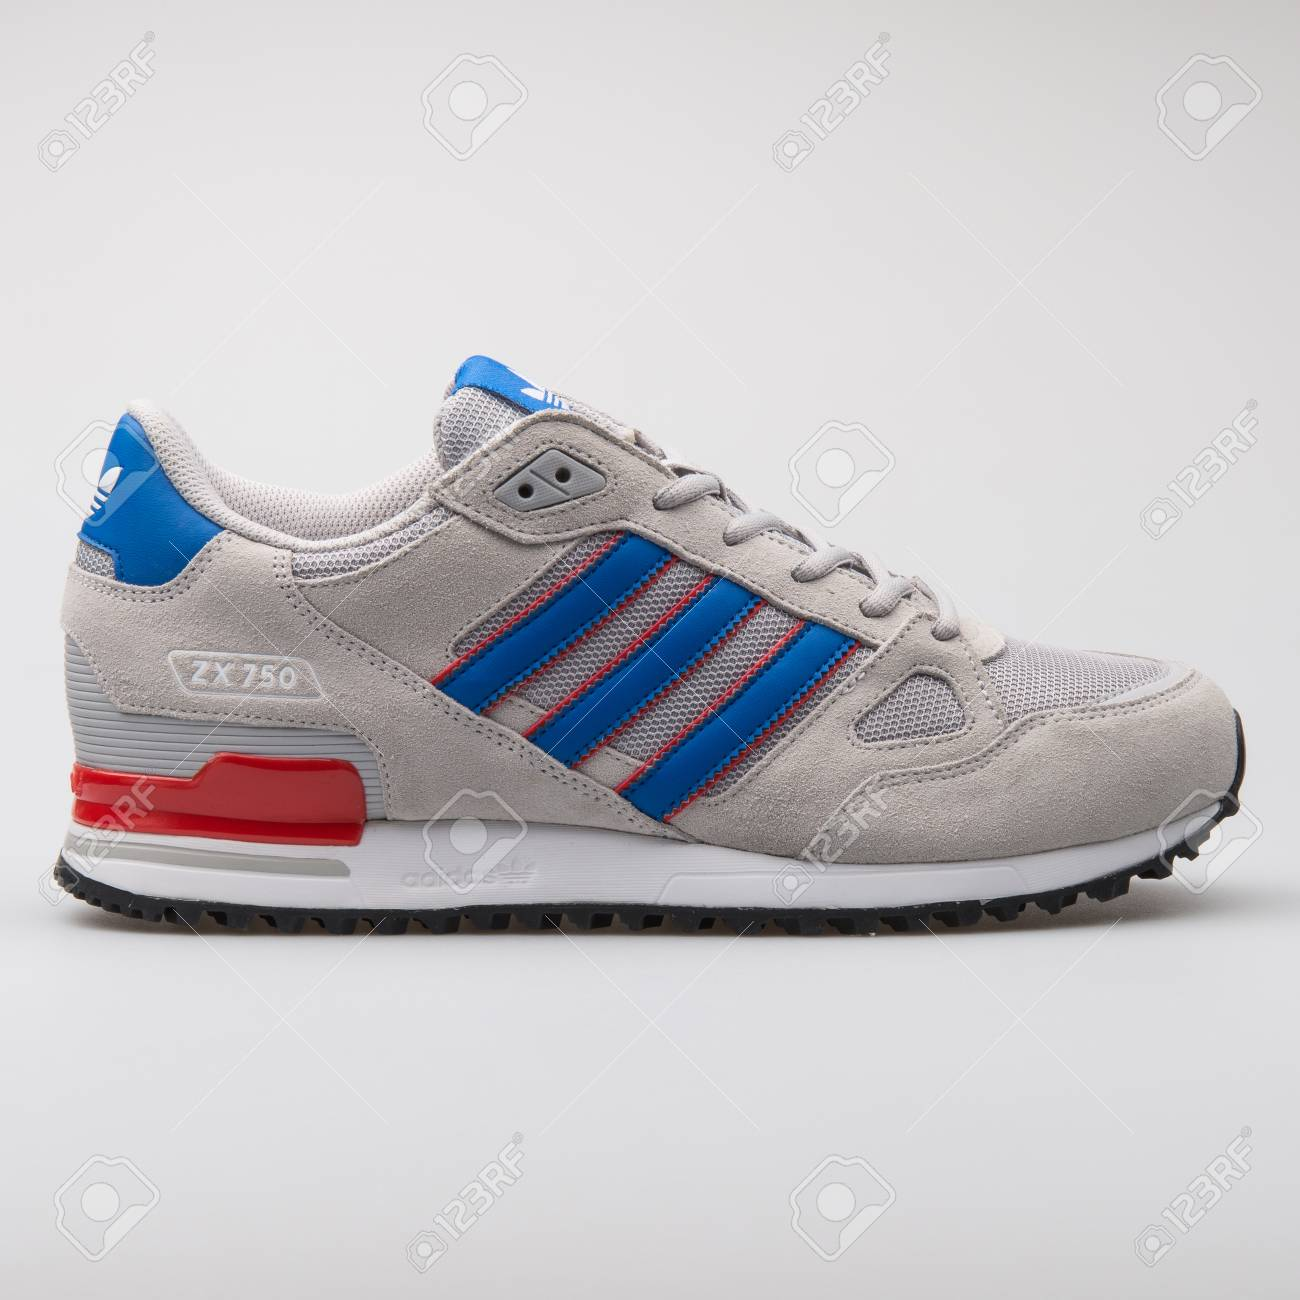 more photos 5f1af 080c1 VIENNA, AUSTRIA - AUGUST 7, 2017: Adidas ZX750 grey, blue and..